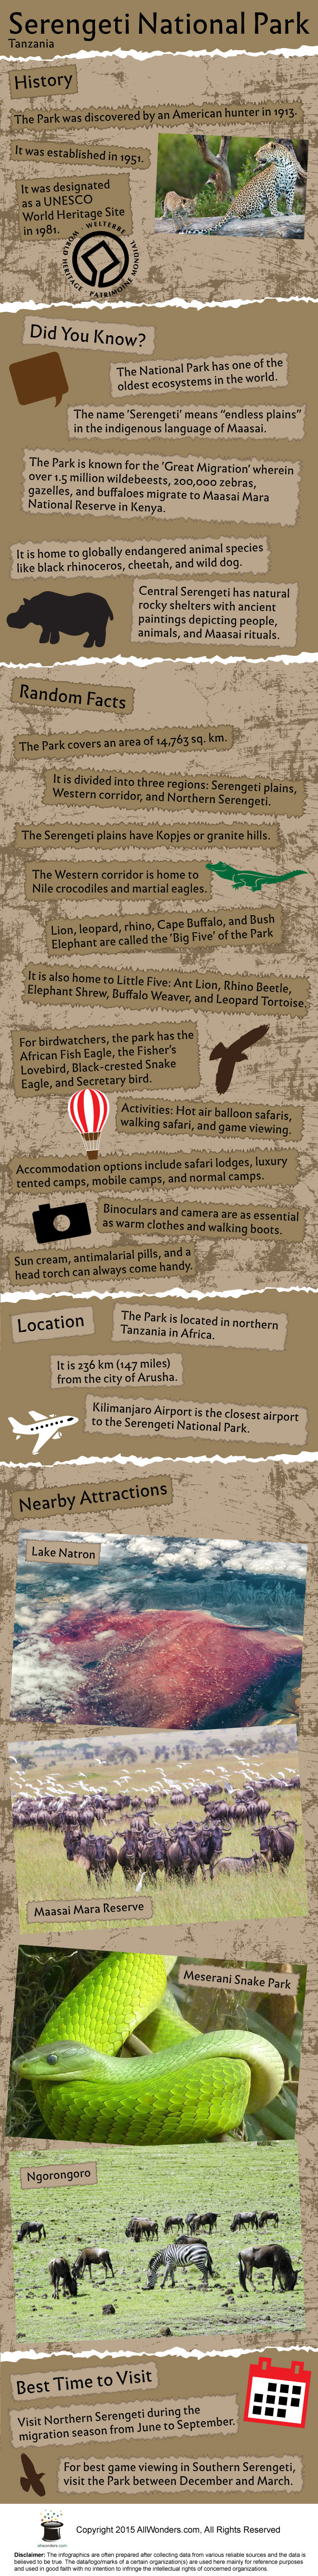 Serengeti National Park Infographic